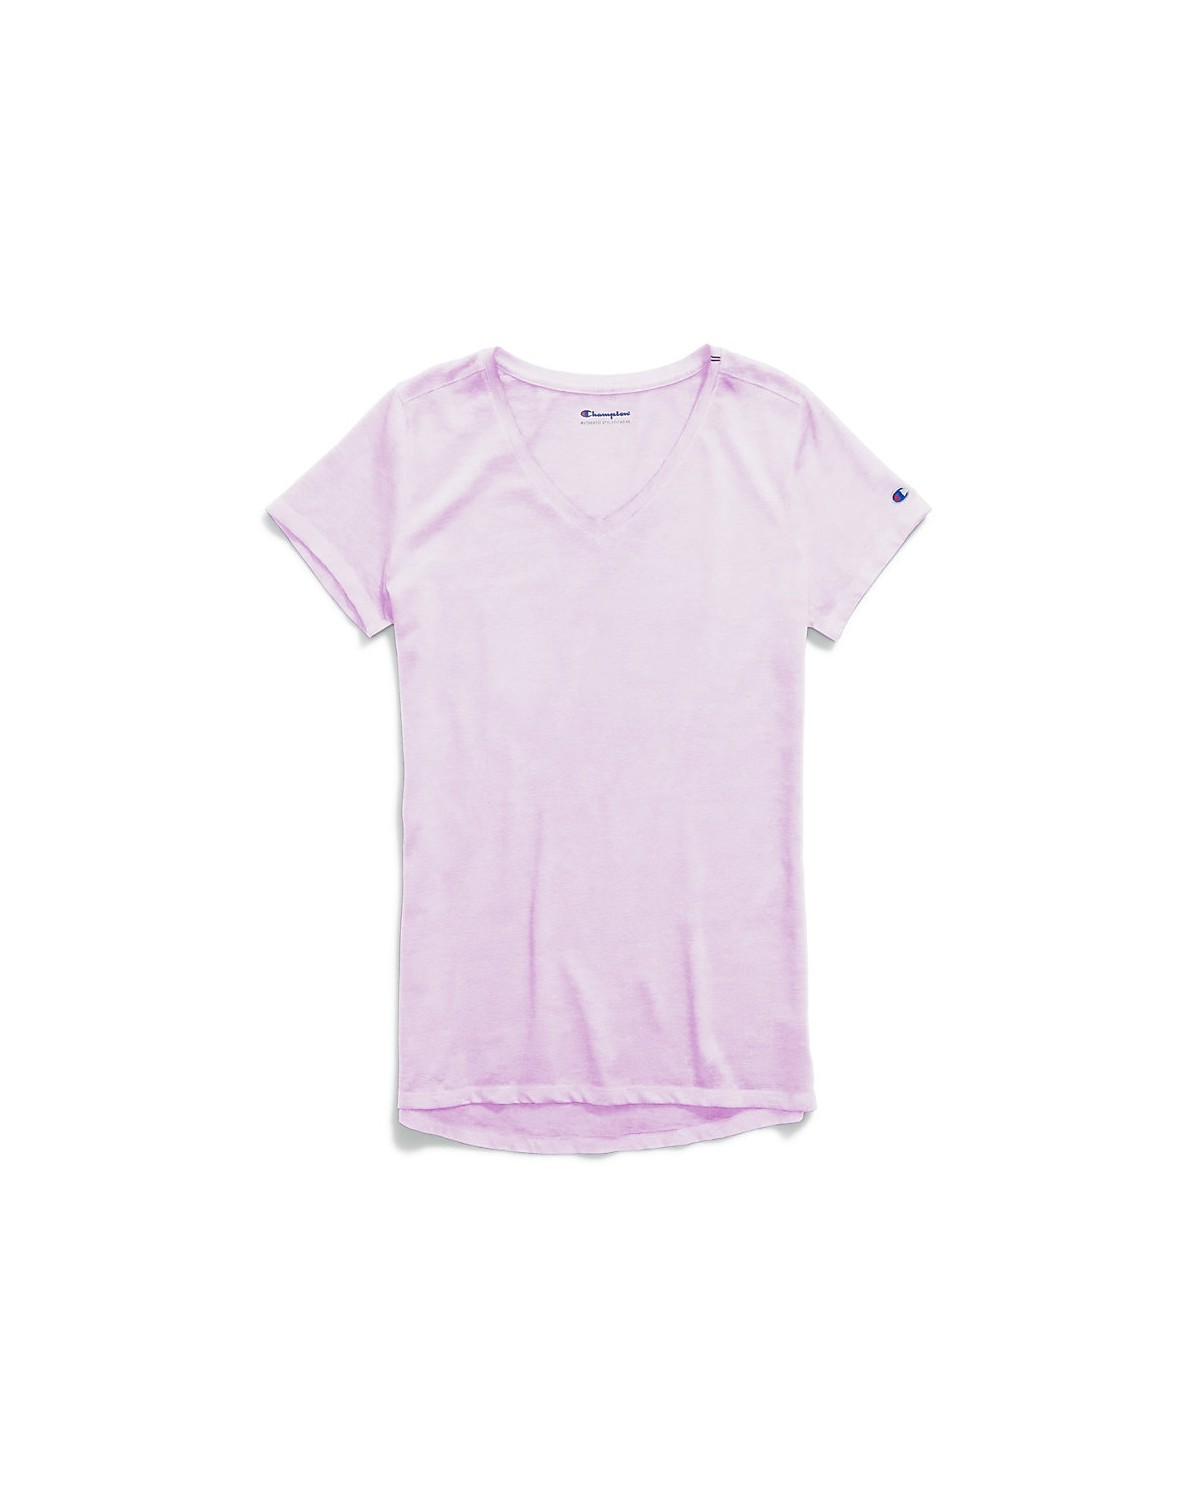 W0821 Champion Pale Violet Rose